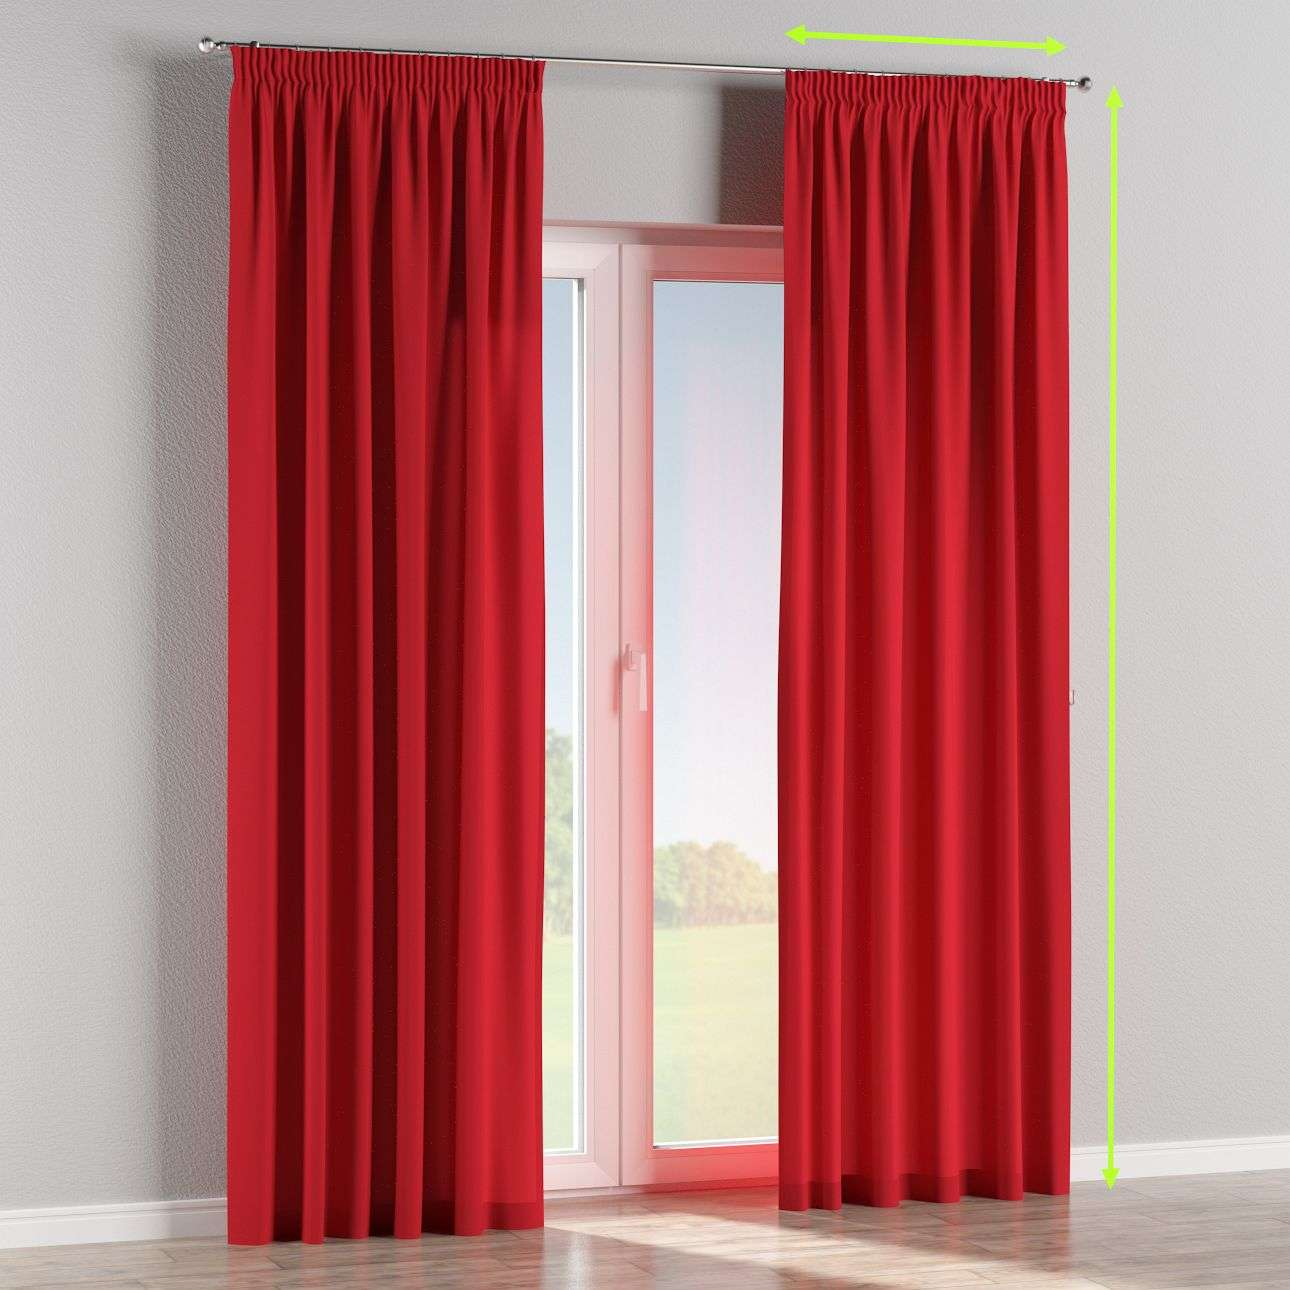 Pencil pleat curtains in collection Cotton Panama, fabric: 702-04